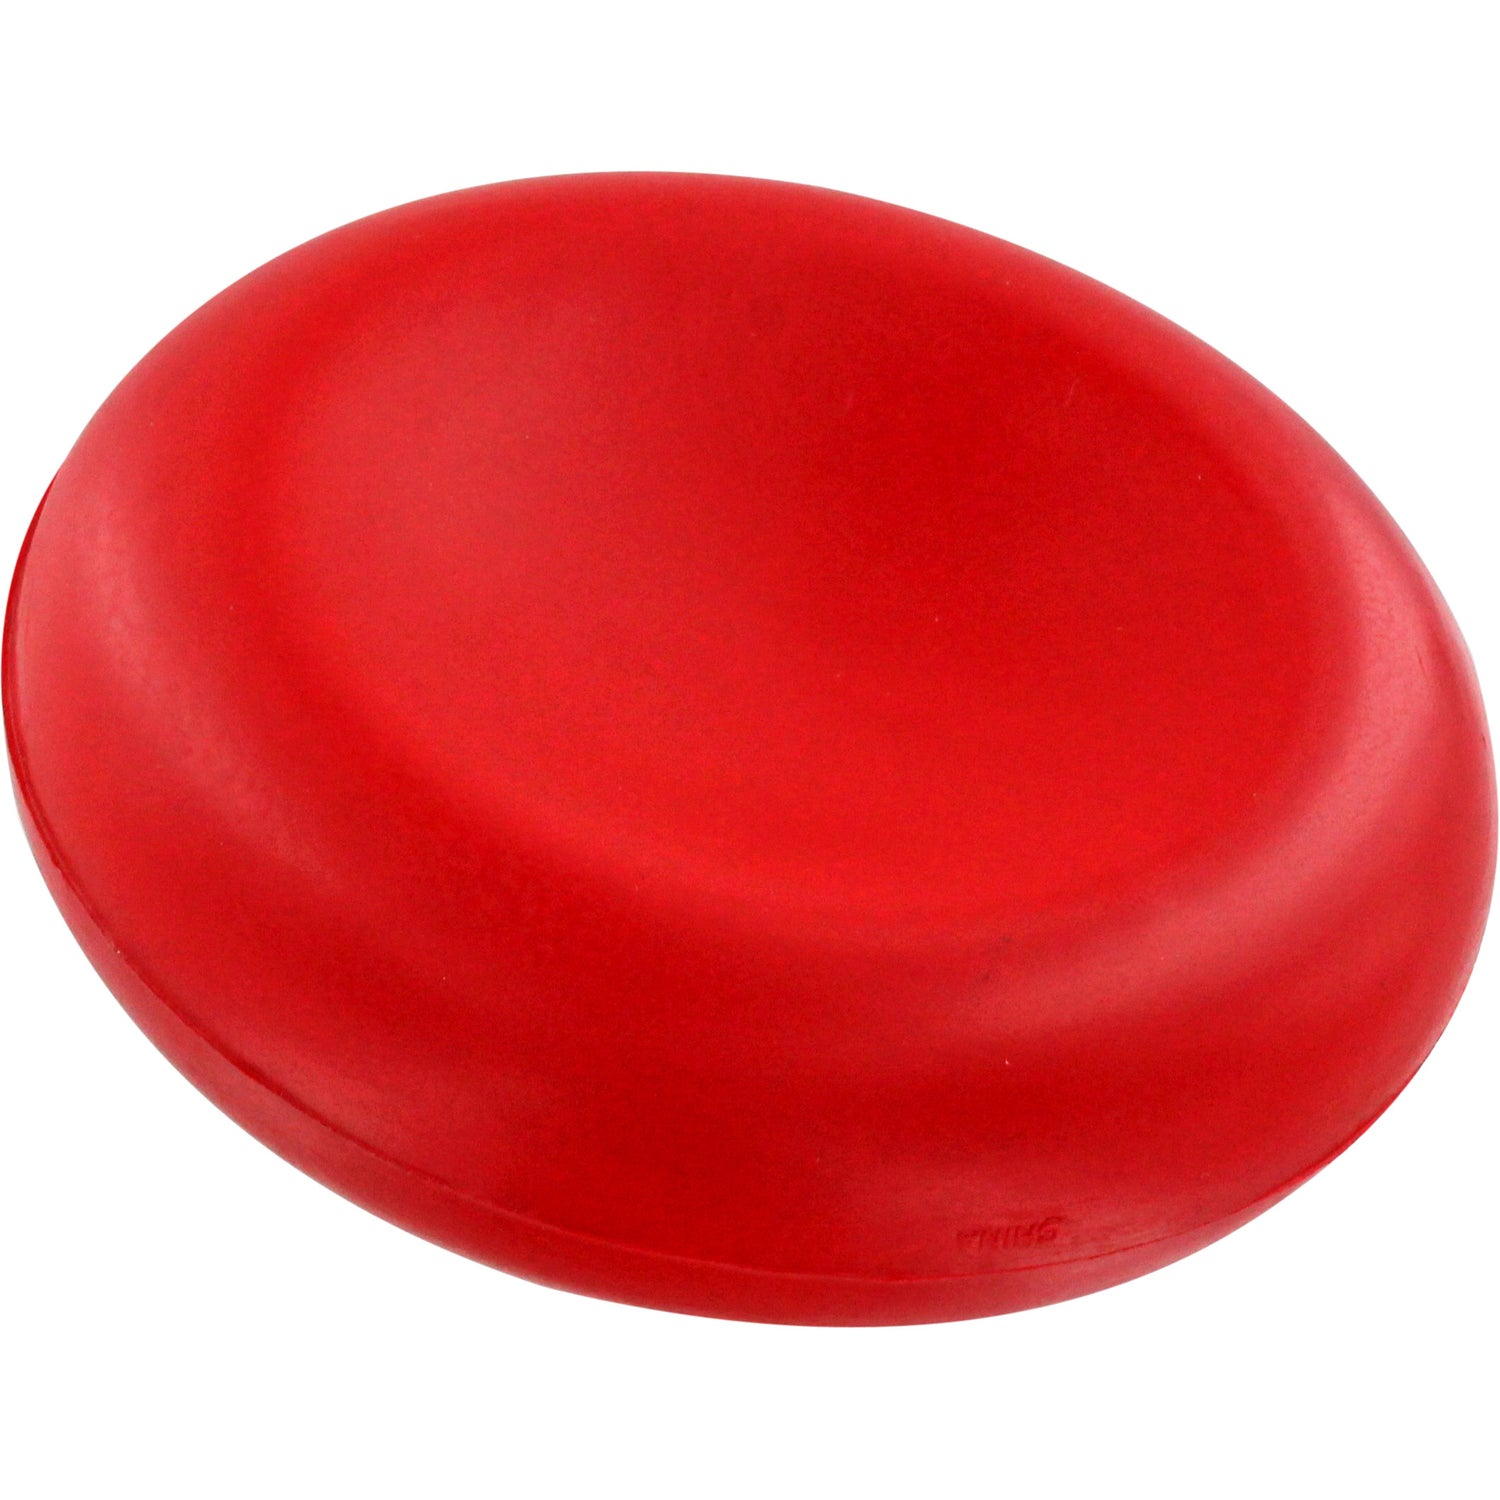 how to make a red blood cell